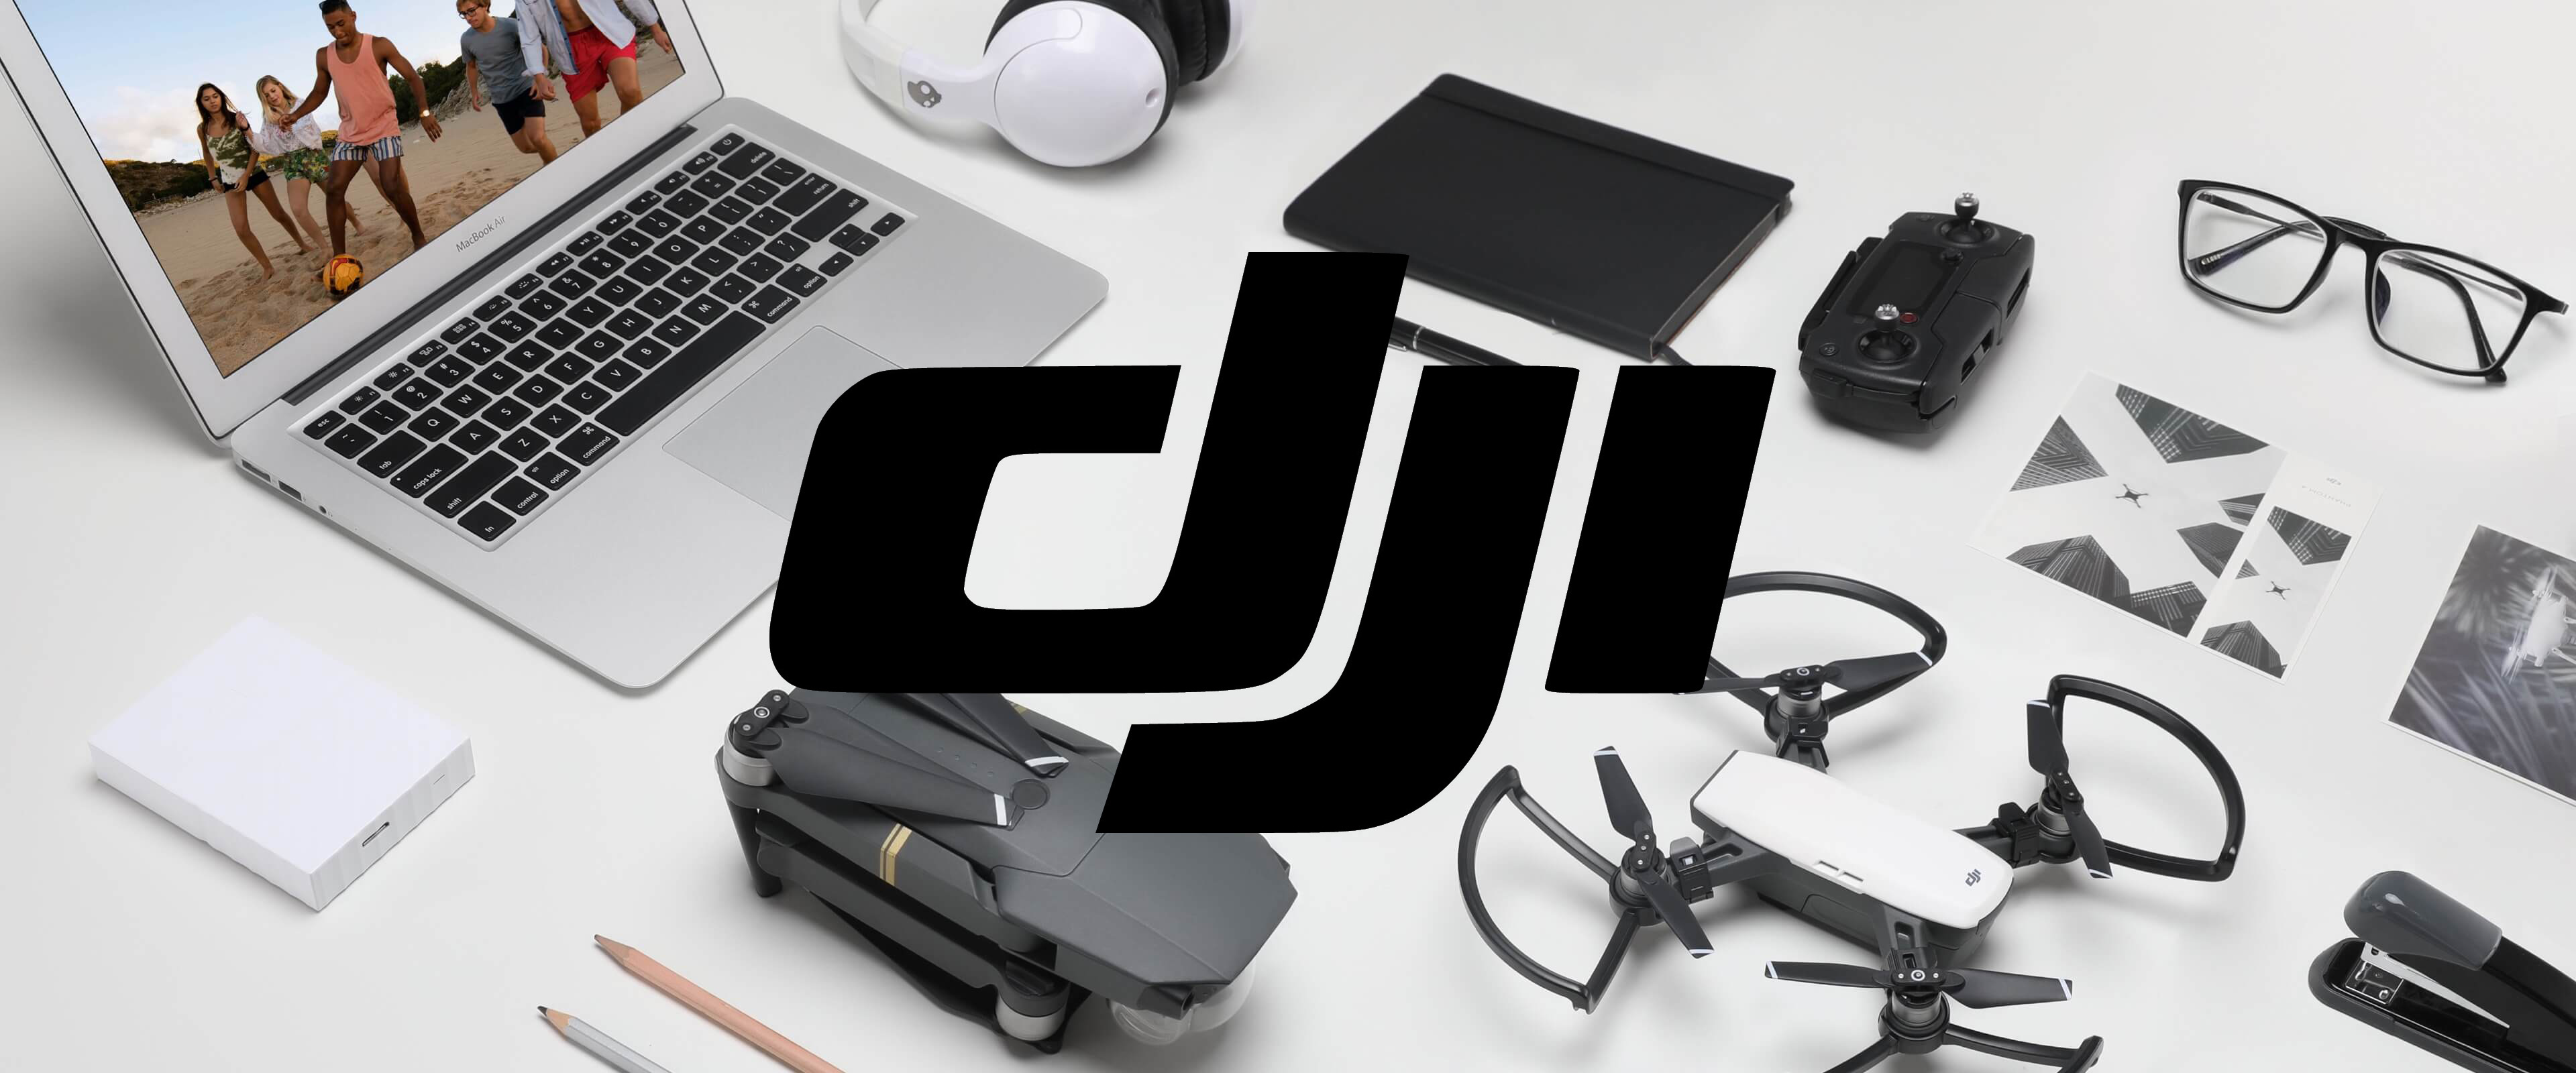 DJI Education Program